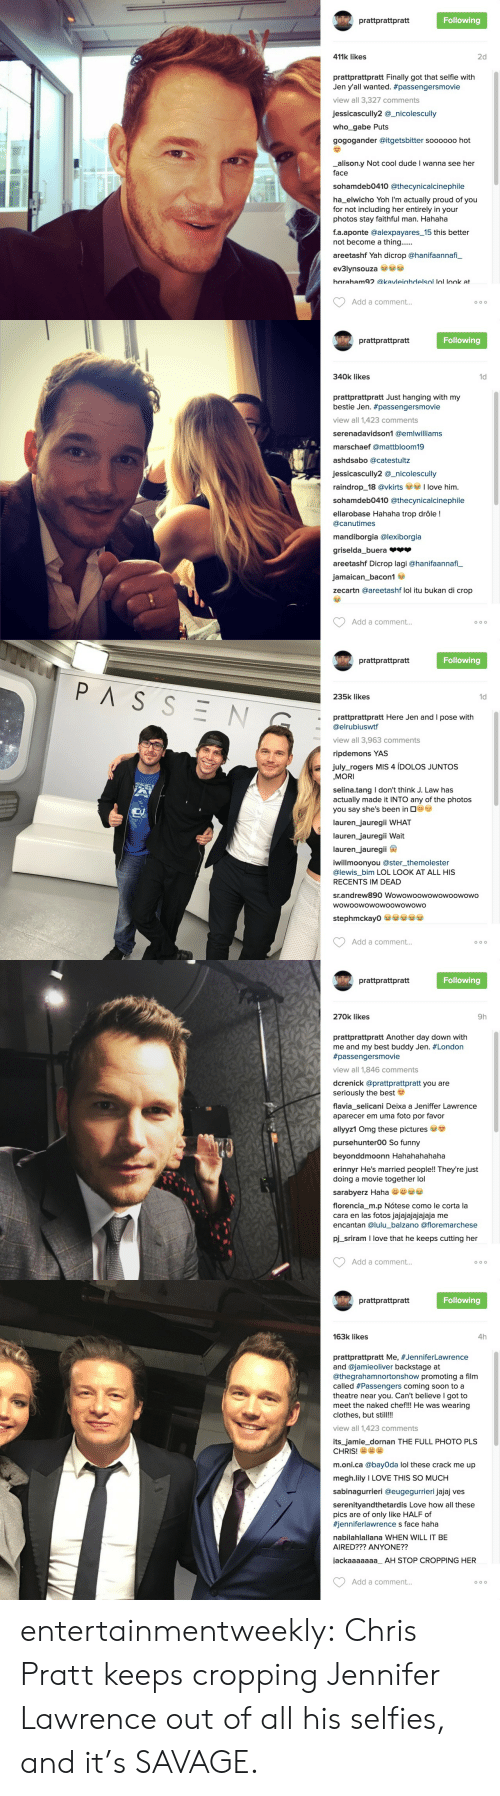 Love This So Much: W prattprattpratt  Following  411k likes  2d  prattprattpratt Finally got that selfie with  Jen y'all wanted. #passengersmovie  view all 3,327 comments  jessicascully2 @_nicolescully  who_gabe Puts  gogogander @itgetsbitter soooo00 hot  alison.y Not cool dude I wanna see her  face  sohamdeb0410 @thecynicalcinephile  ha_elwicho Yoh I'm actually proud of you  for not including her entirely in your  photos stay faithful man. Hahaha  f.a.aponte @alexpayares_15 this better  not become a thing......  areetashf Yah dicrop @hanifaannafi_  ev3lynsouza se  baraham92 @kavleiahdelsol lol look at  Add a comment...  O o o   W prattprattpratt  Following  340k likes  1d  prattprattpratt Just hanging with my  bestie Jen. #passengersmovie  view all 1,423 comments  serenadavidson1 @emlwilliams  marschaef @mattbloom19  ashdsabo @catestultz  jessicascully2 @_nicolescully  love him  raindrop_18 @vkirts  sohamdeb0410 @thecynicalcinephile  ellarobase Hahaha trop drôle !  @canutimes  mandiborgia @lexiborgia  griselda_buera  areetashf Dicrop lagi @hanifaannafi  jamaican_bacon1  zecartn @areetashf lol itu bukan di crop  Add a comment...  O o o   prattprattpratt  Following  PASSEN  235k likes  1d  prattprattpratt Here Jen and I pose with  @elrubiuswtf  view all 3,963 comments  ripdemons YAS  july_rogers MIS 4 ÍDOLOS JUNTOS  MORI  selina.tang I don't think J. Law has  actually made it INTO any of the photos  you say she's been in G  lauren_jauregii WHAT  lauren_jauregii Wait  lauren_jauregii  iwillmoonyou @ster_themolester  @lewis_bim LOL LOOK AT ALL HIS  RECENTS IM DEAD  sr.andrew890 Wowowoowowowoowowo  wowoowowowoowowowo  stephmckay0  Add a comment...  O o O   prattprattpratt  Following  270k likes  9h  prattprattpratt Another day down with  me and my best buddy Jen. #London  #passengersmovie  view all 1,846 comments  dcrenick @prattprattpratt you are  seriously the best  flavia_selicani Deixa a Jeniffer Lawrence  aparecer em uma foto por favor  allyyz1 Omg these pictures  